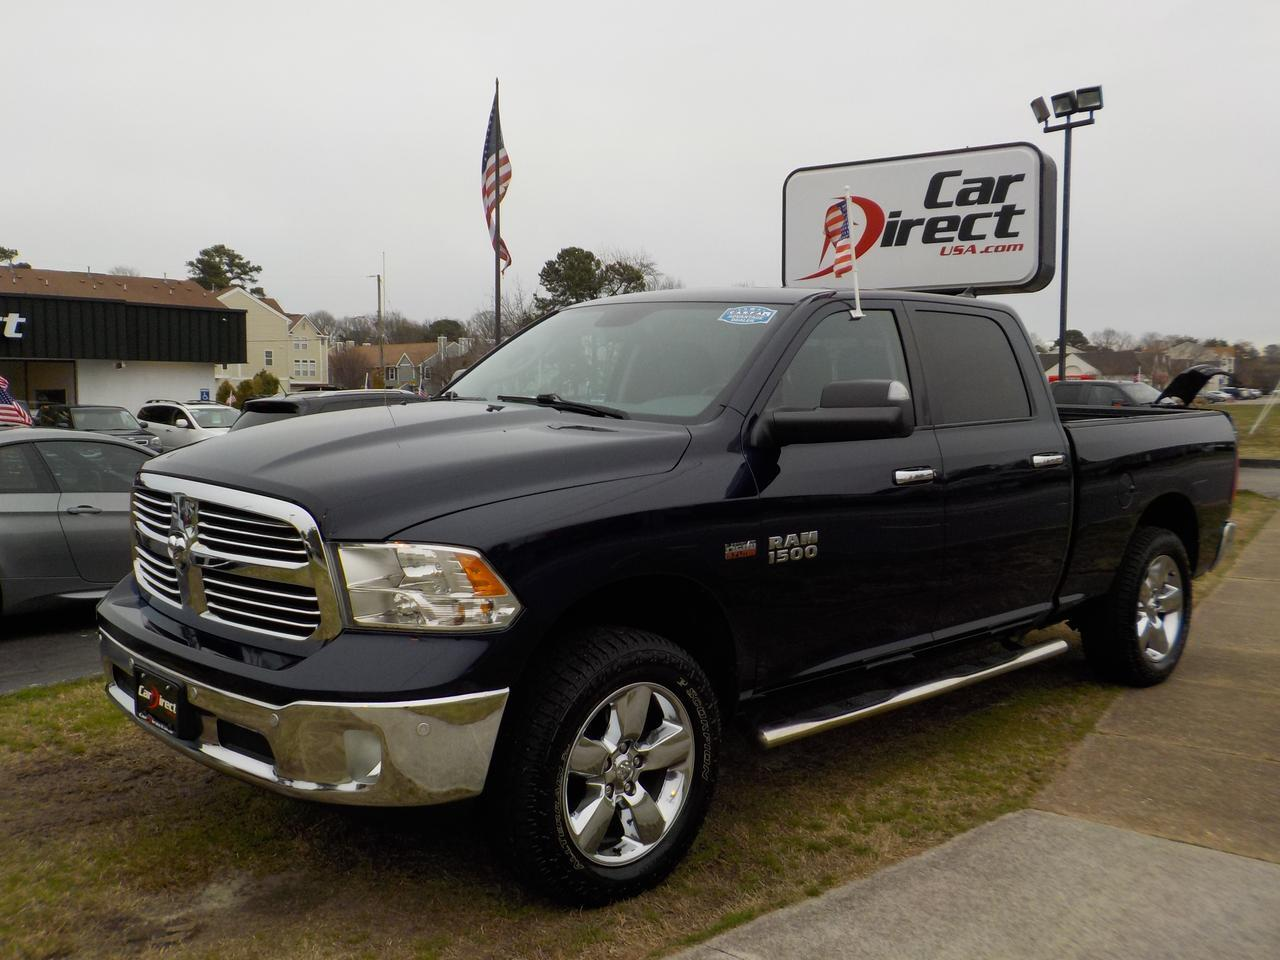 2014 RAM 1500 BIG HORN CREW CAB 4X4, WARRANTY, REMOTE START, PARKING SENSORS, RUNNING BOARDS, TOW, SUNROOF!